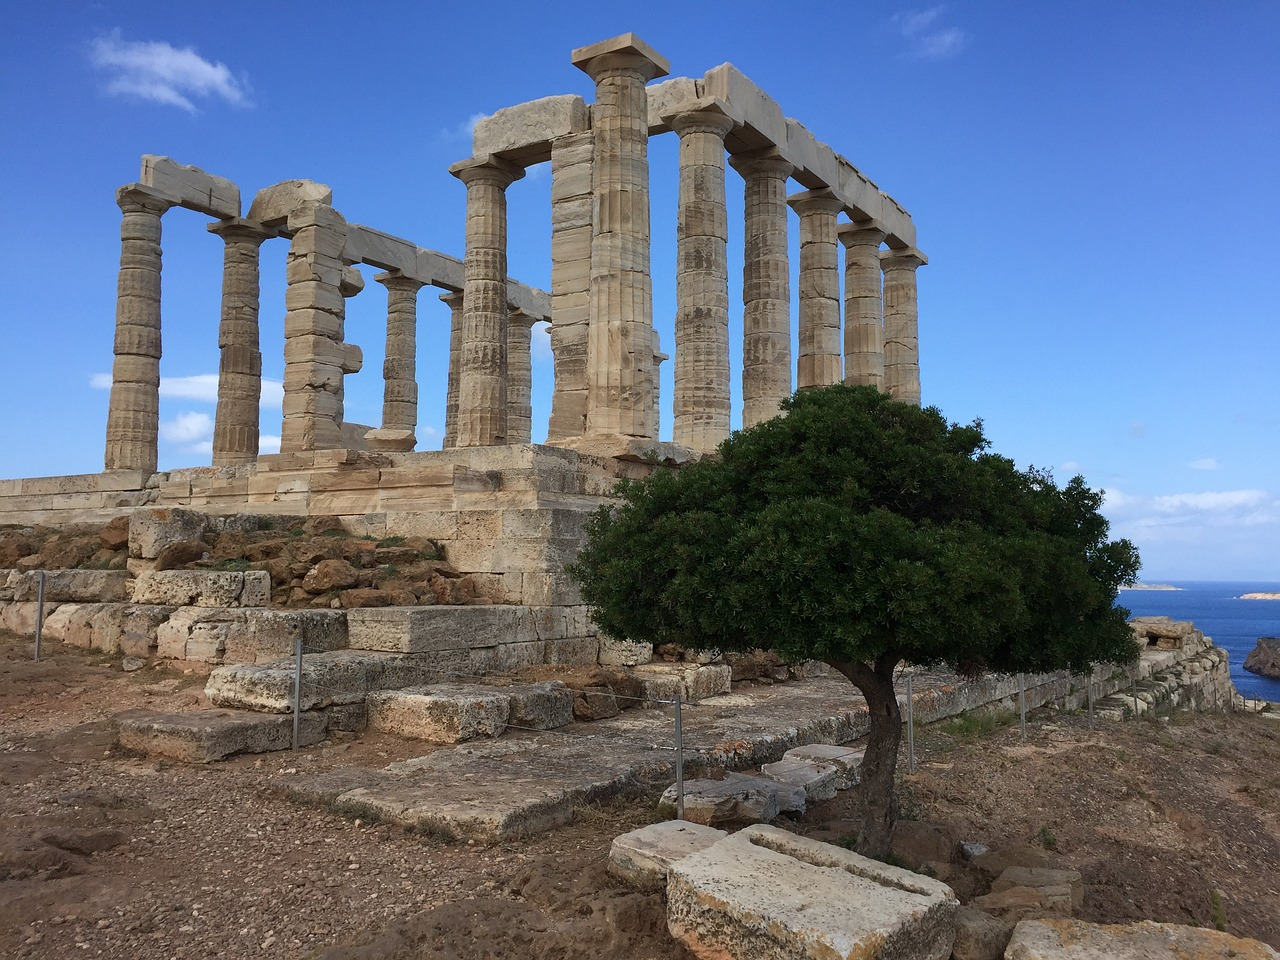 Temple of Poseidon on Cape Sounion in Attica, Greece